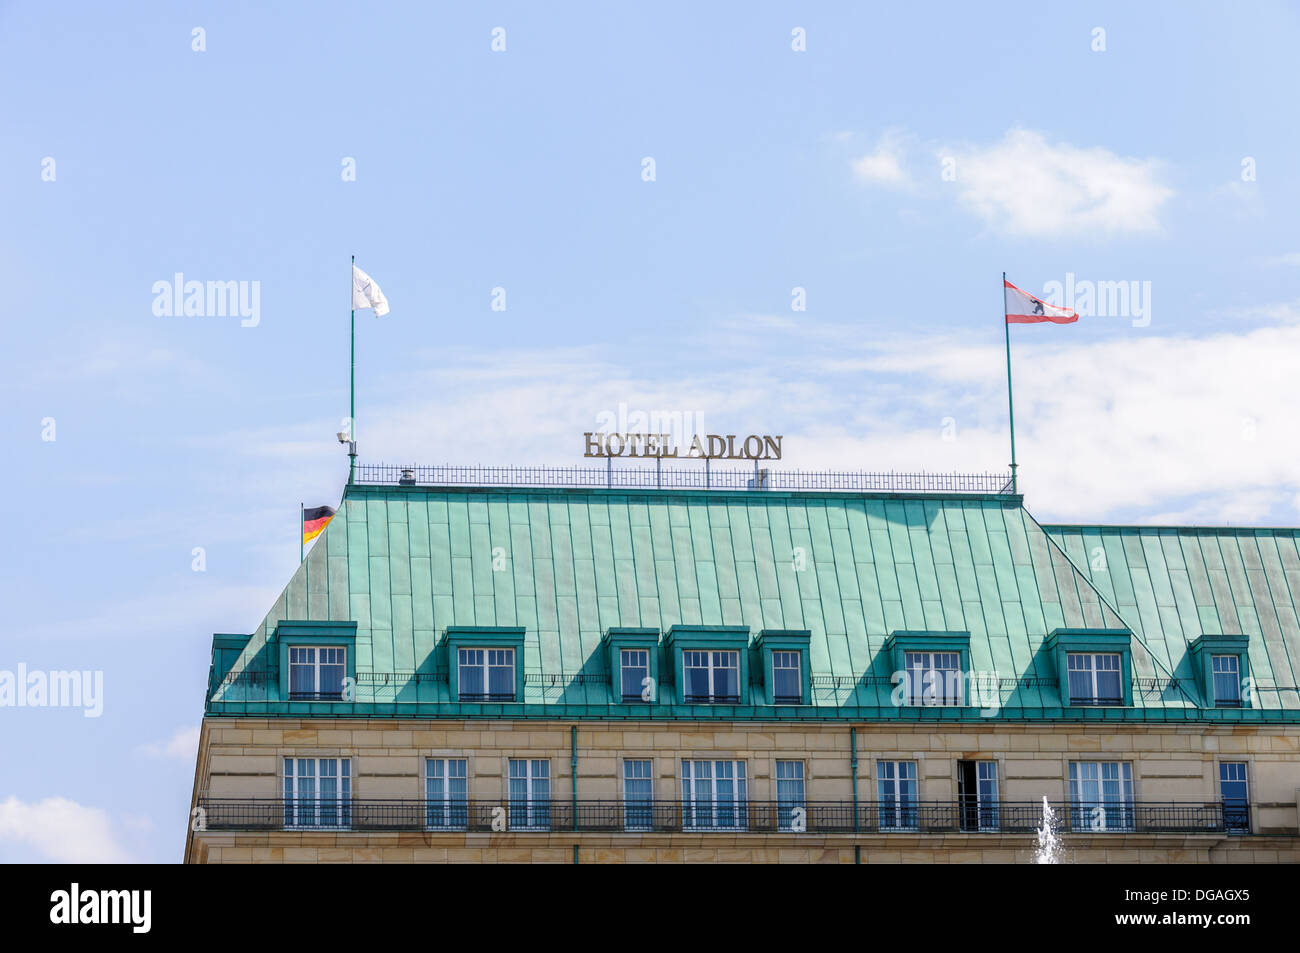 Roof of the Hotel Adlon Kempinski with Berlin and German flag - Pariser Platz, Unter den Linden, Berlin Germany Stock Photo